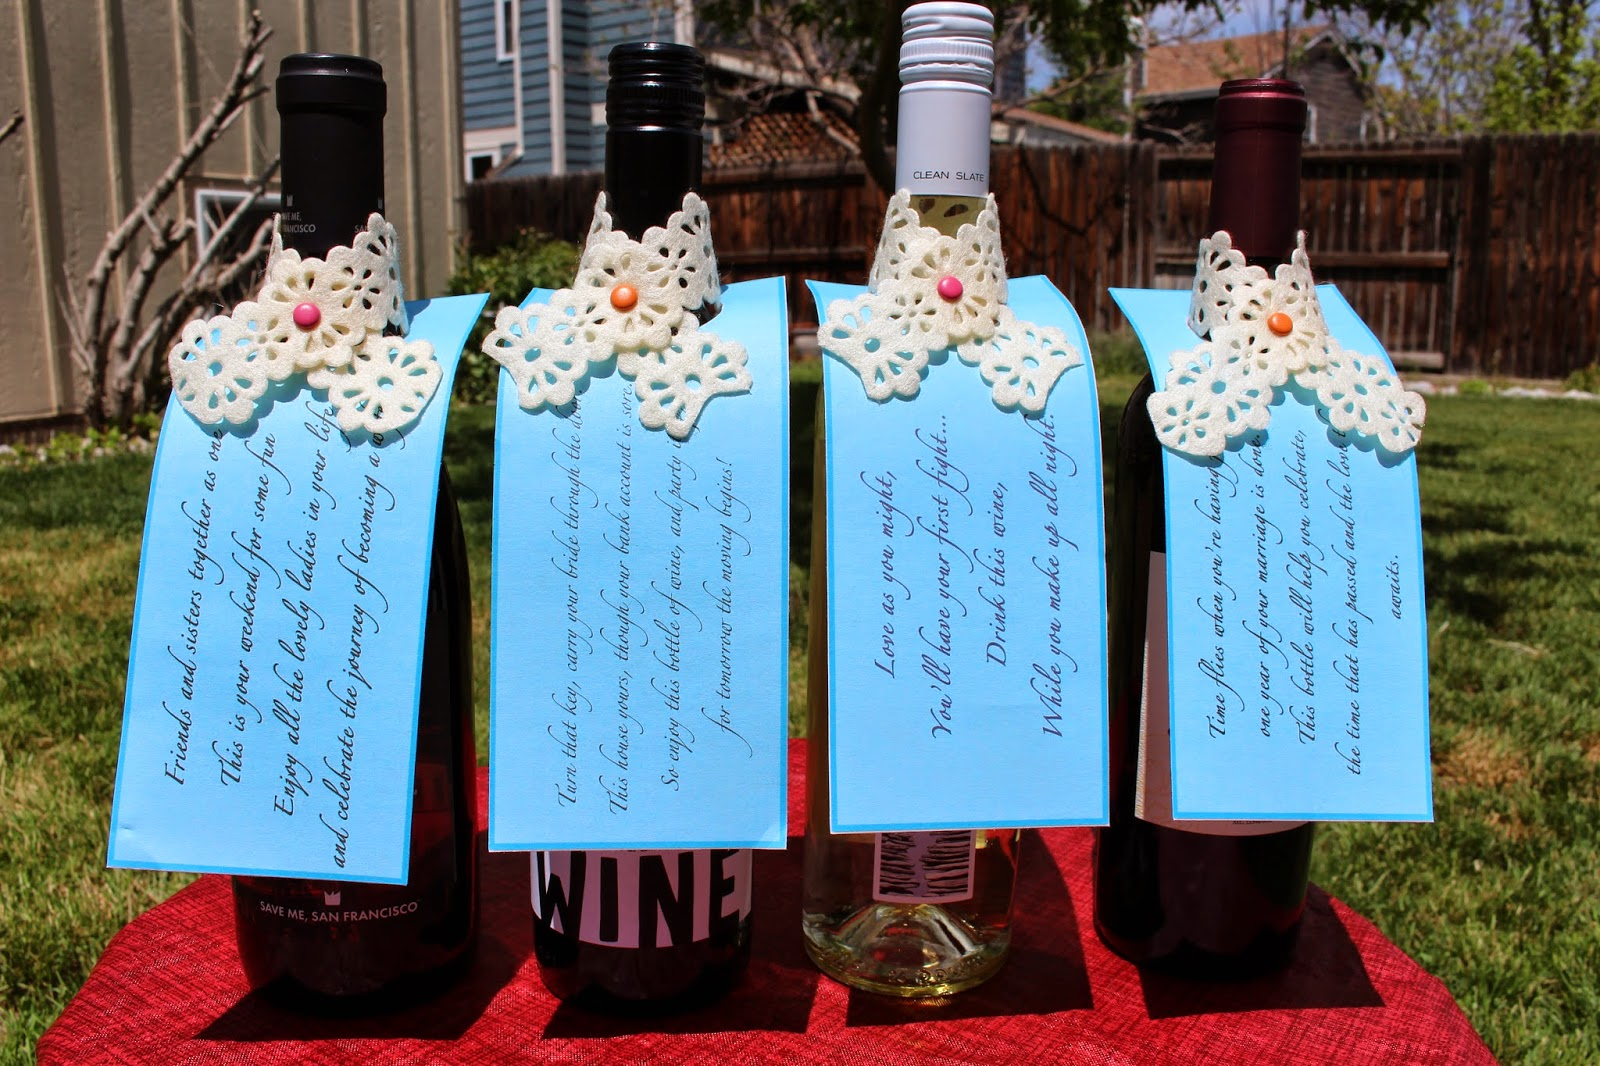 Left to right: Soul Sister wine for the Bachelorette Party, House Wine ...